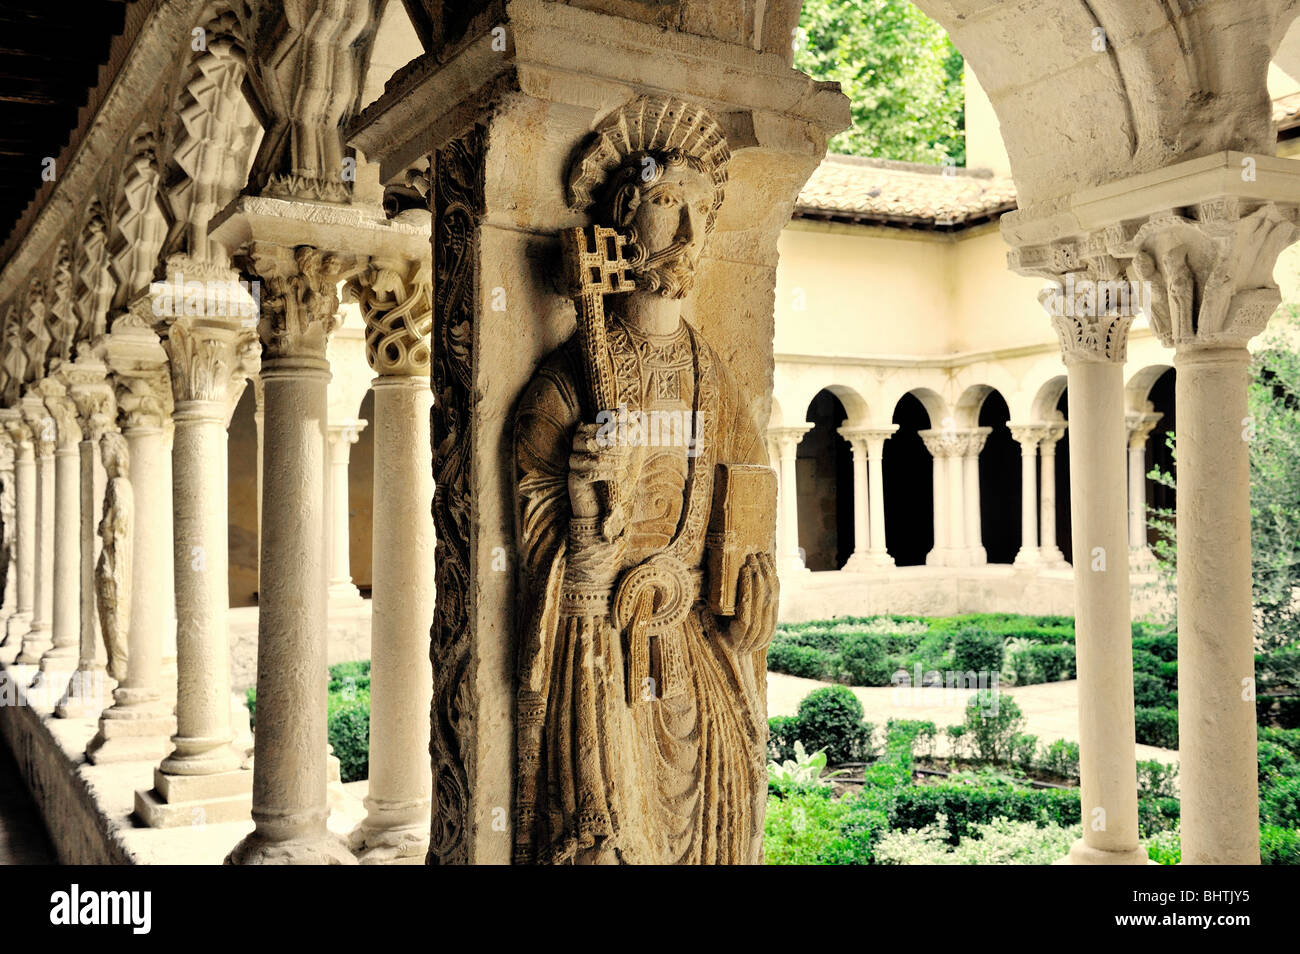 Romanesque cloisters in the Cathedral of the Holy Saviour, Cathedrale Saint Sauveur, in town of Aix en Provence, - Stock Image